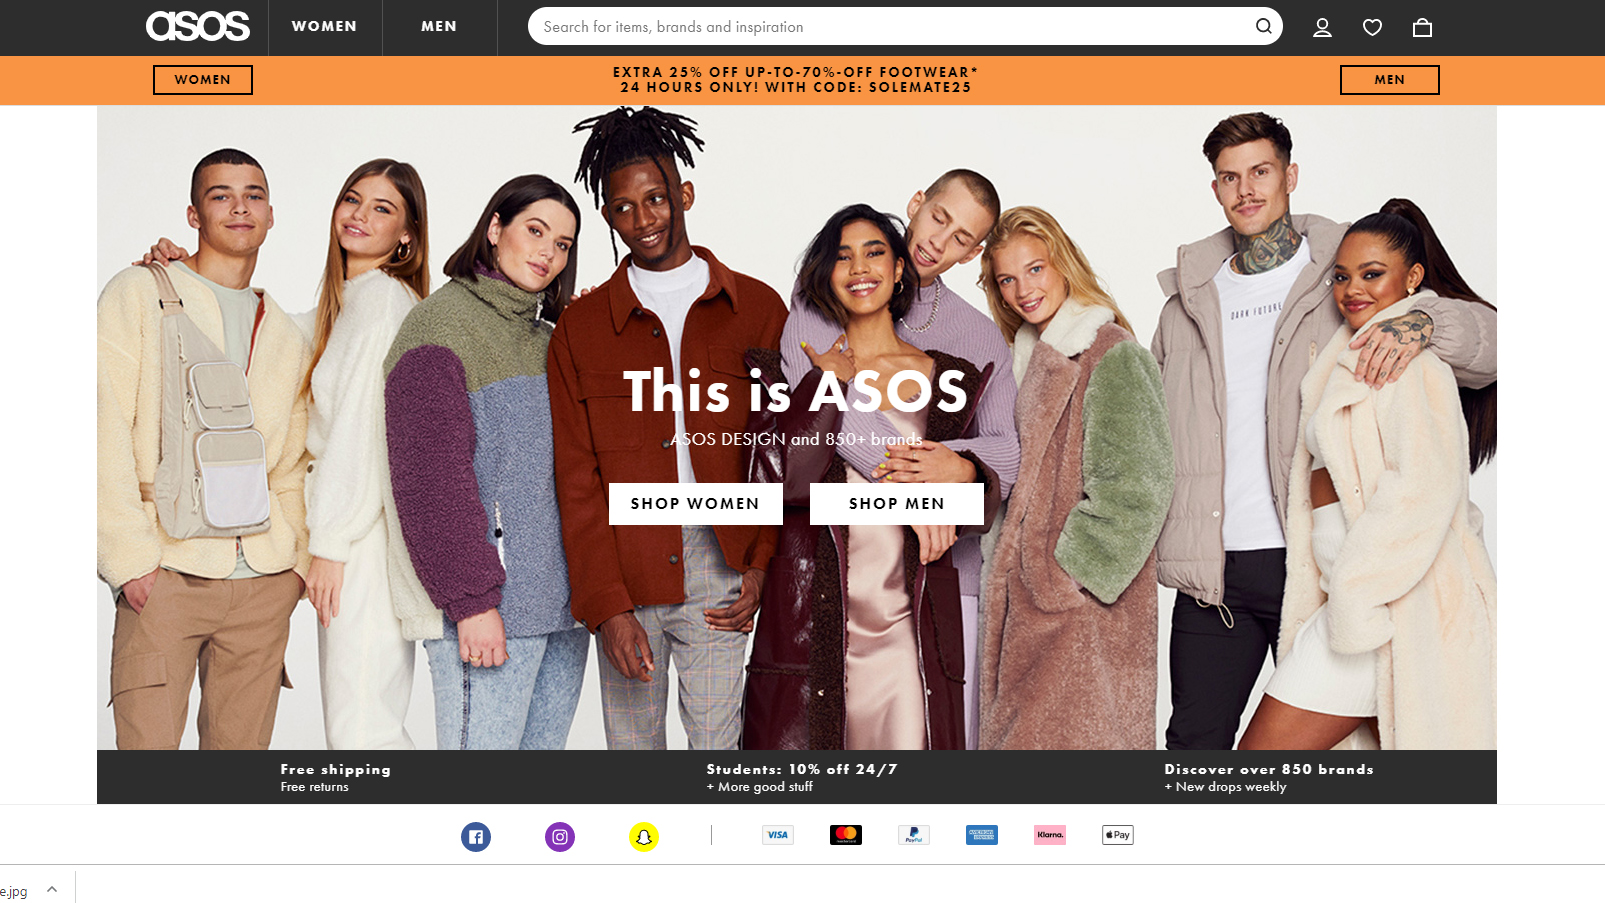 Westlake Legal Group ASOSScrengrab ASOS apologizes, removes 'fat suit' game following accusations of body-shaming New York Post Hana R. Alberts fox-news/style-and-beauty fox-news/fitness-and-wellbeing fnc/lifestyle fnc b017bb7e-d8e1-5077-8542-7ae2c5e70be7 article